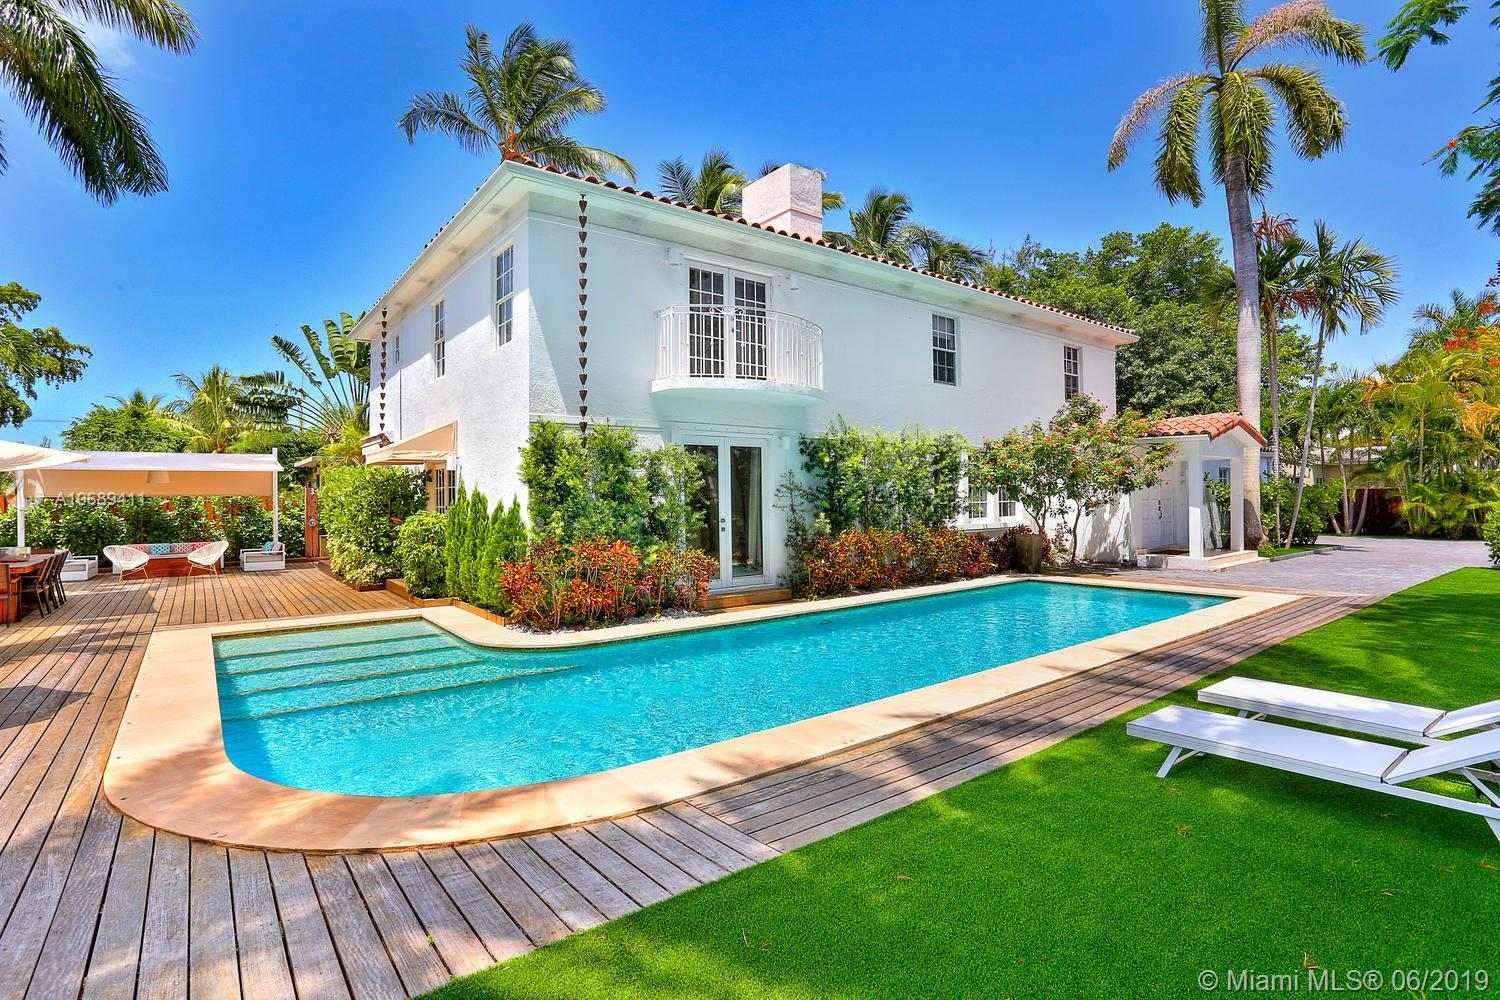 Located on gated and secured Hibiscus Island, this charming 3.857 SqFt, 2 story modern style house offers 5BD/4.5BA and was totally renovated in 2017. 4BD upstairs, including the Master Suite overlooking the L shape pool and garden. This house, located on a 9.500 Sq.Ft corner lot, is in perfect condition.  New modern kitchen, new bathrooms, Tile and Wood flooring, new A/C. Additional features : heated pool, outdoor kitchen with bar and large outdoor entertaining area, security system, electric gate, new driveway. This house is made for Families with its service/maid quarter, large family room and open kitchen.